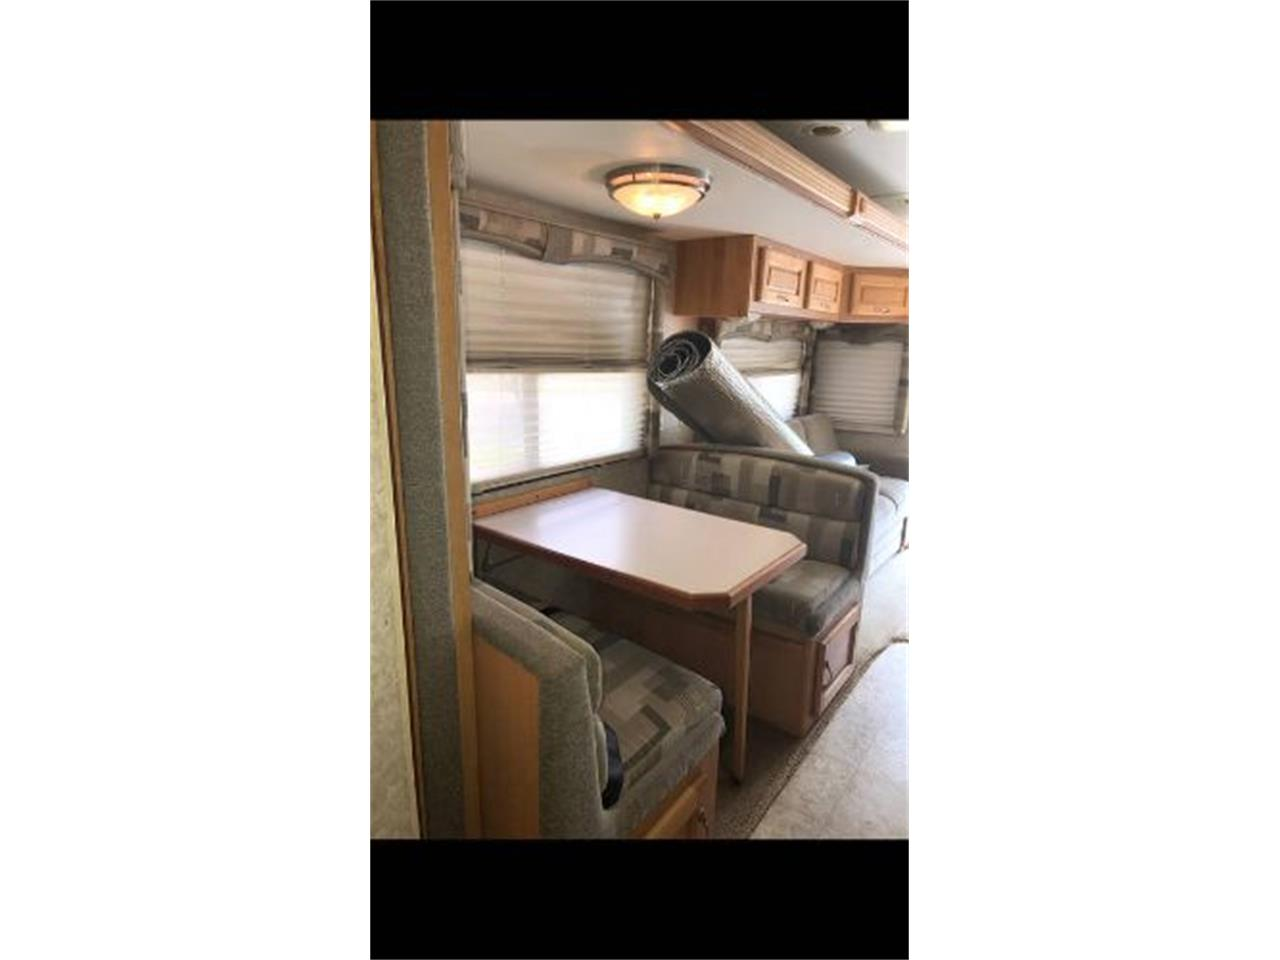 2006 Holiday Rambler Recreational Vehicle for sale in Cadillac, MI – photo 15